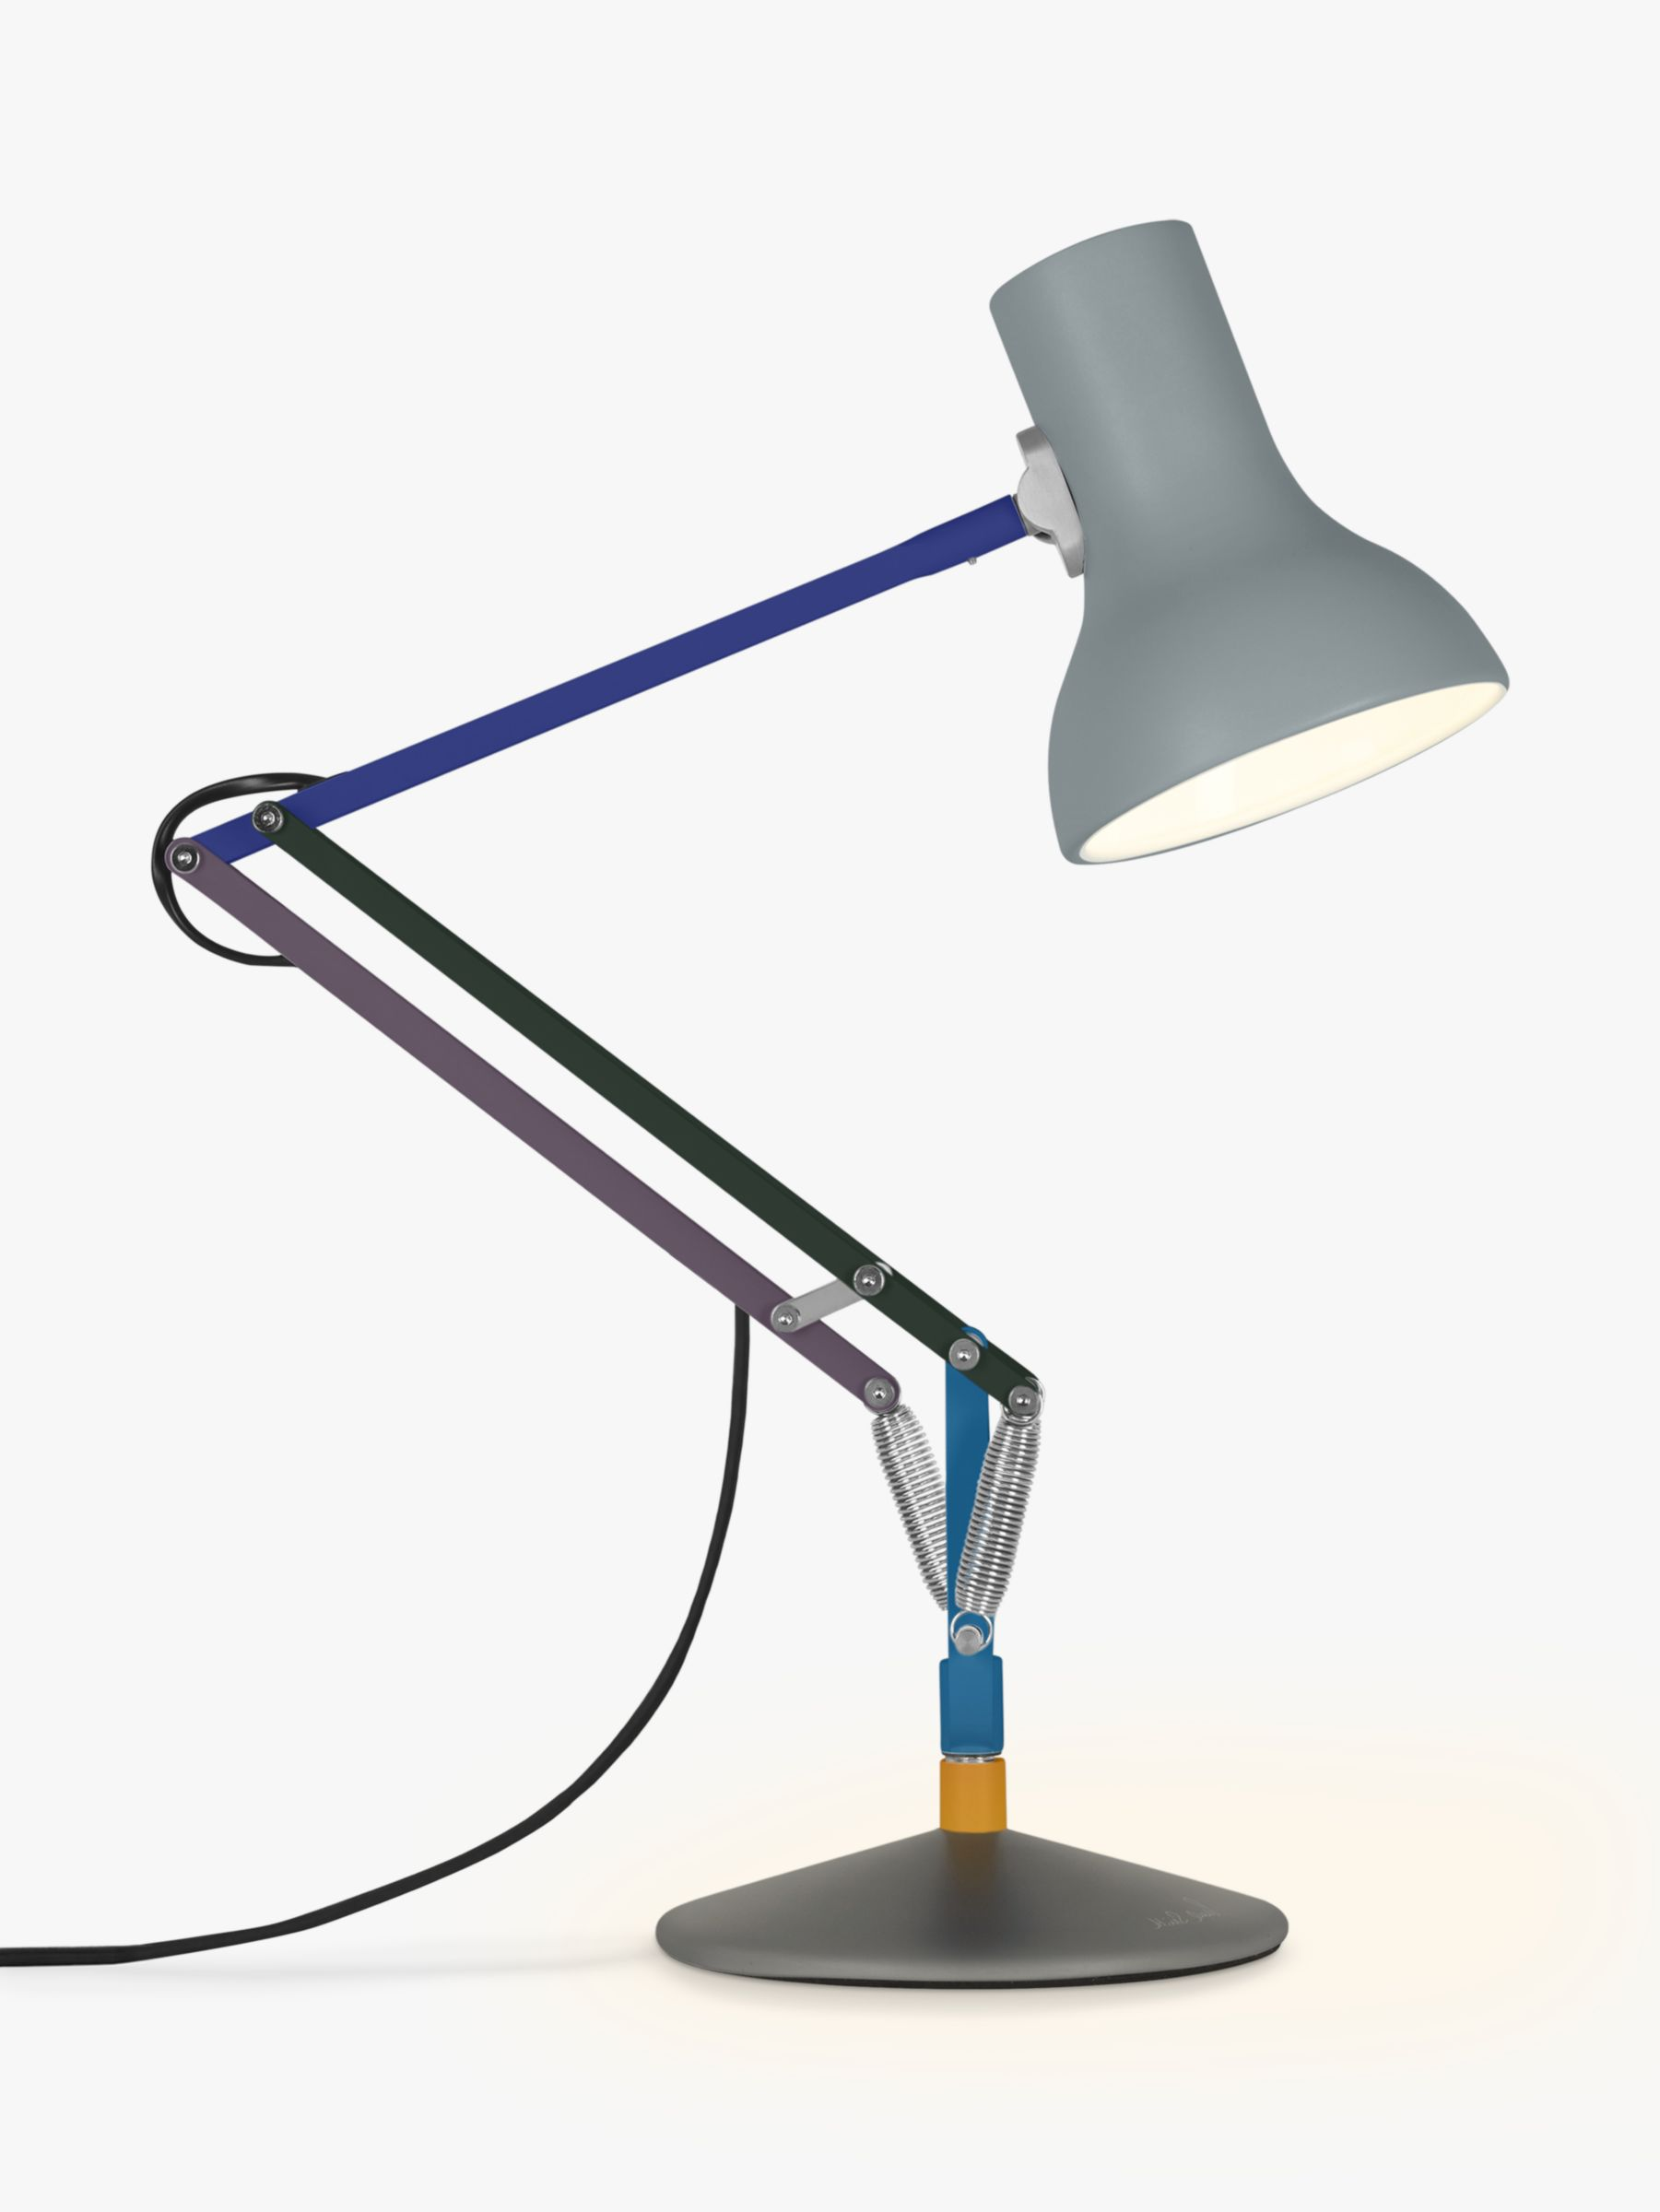 Anglepoise Anglepoise + Paul Smith Type 75 Mini Desk Lamp, Edition 2